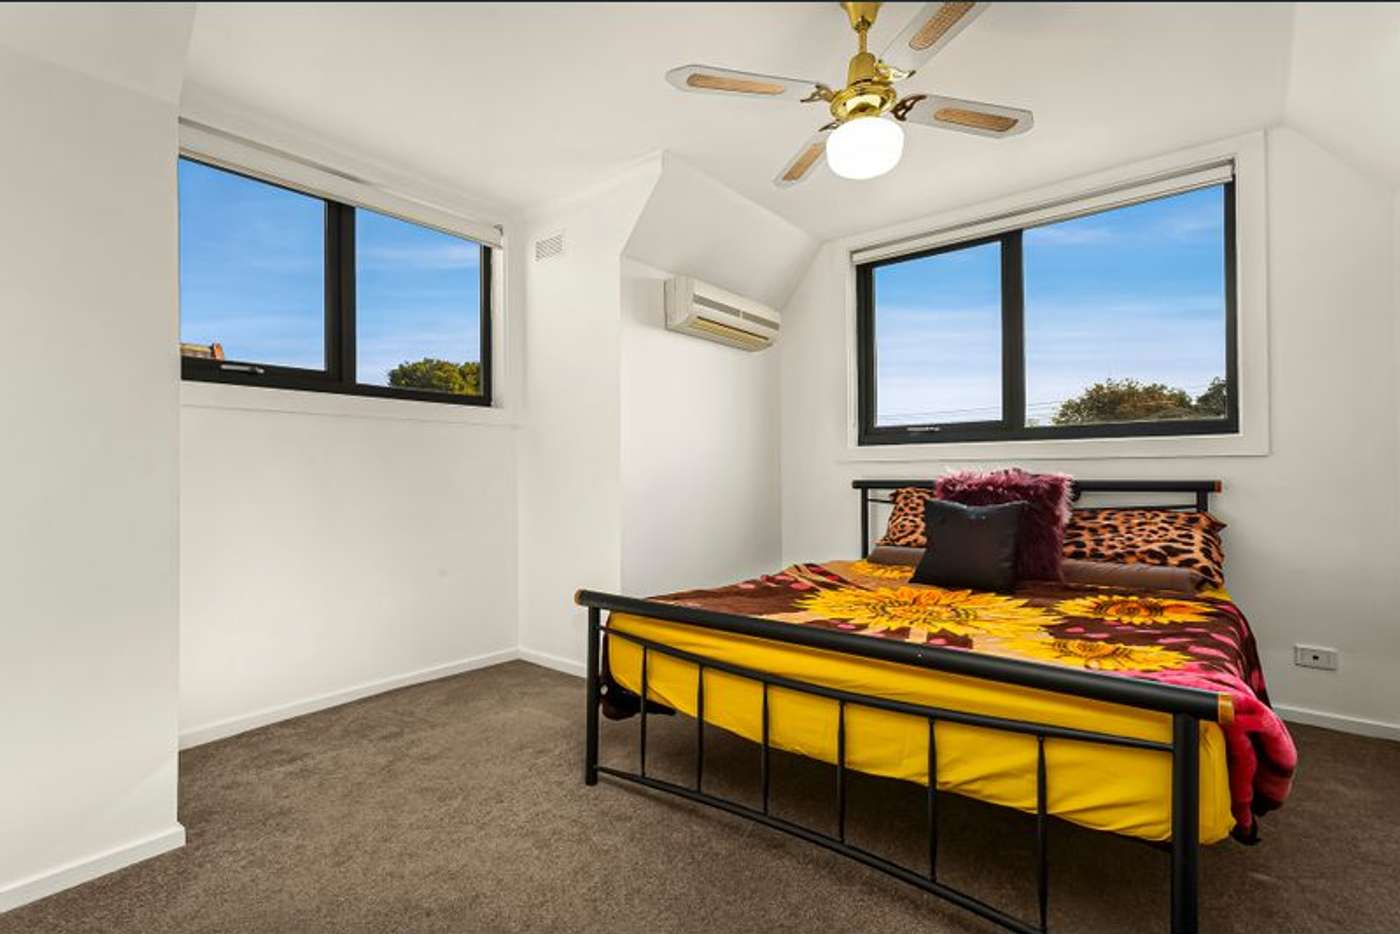 Seventh view of Homely townhouse listing, 3/699 Pascoe Vale Rd., Glenroy VIC 3046